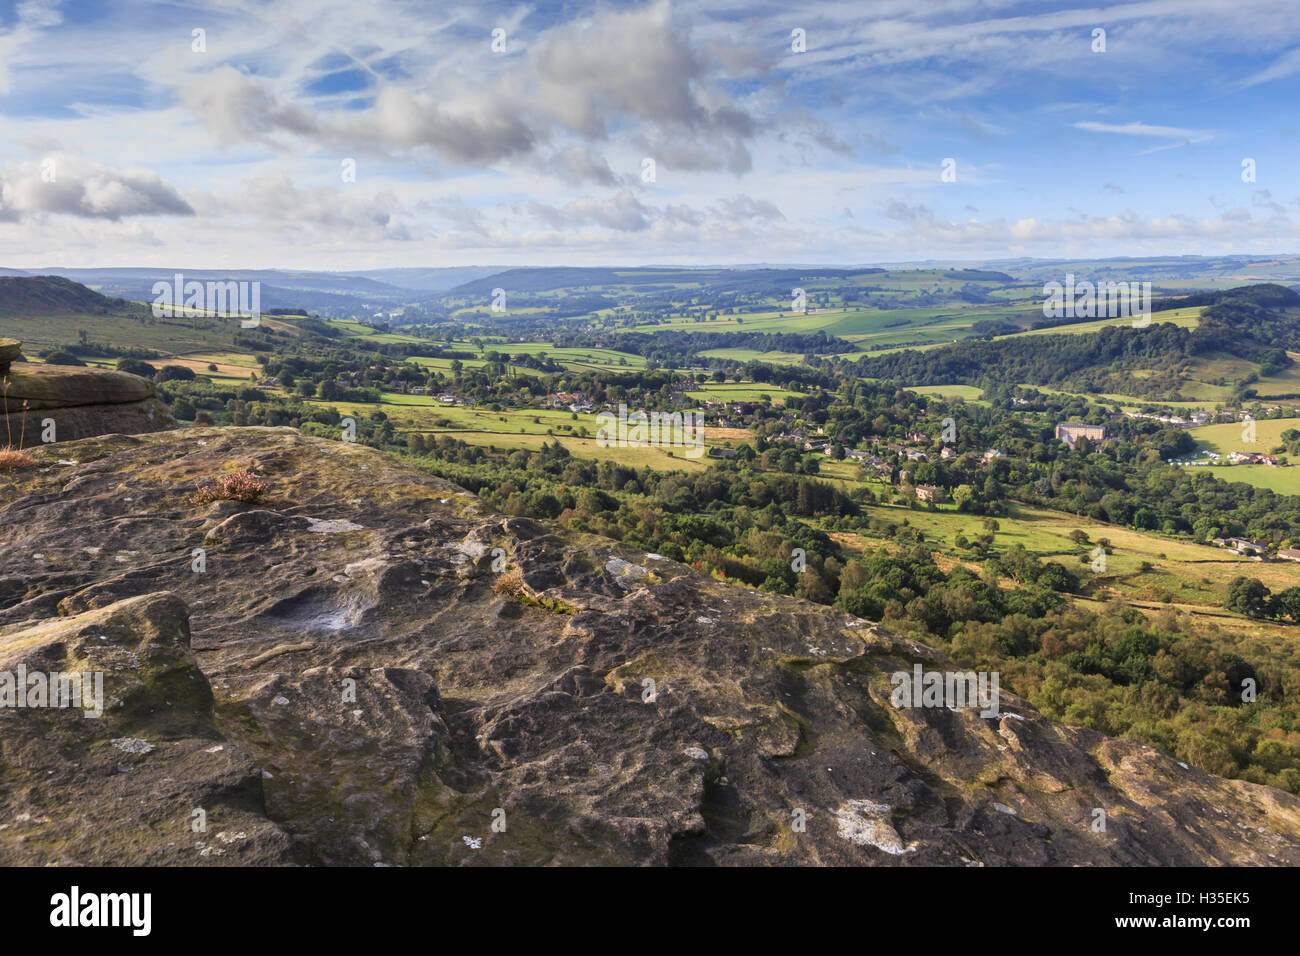 View towards Chatsworth from Curbar Edge, with Calver and Curbar villages, Peak District National Park, Derbyshire, - Stock Image